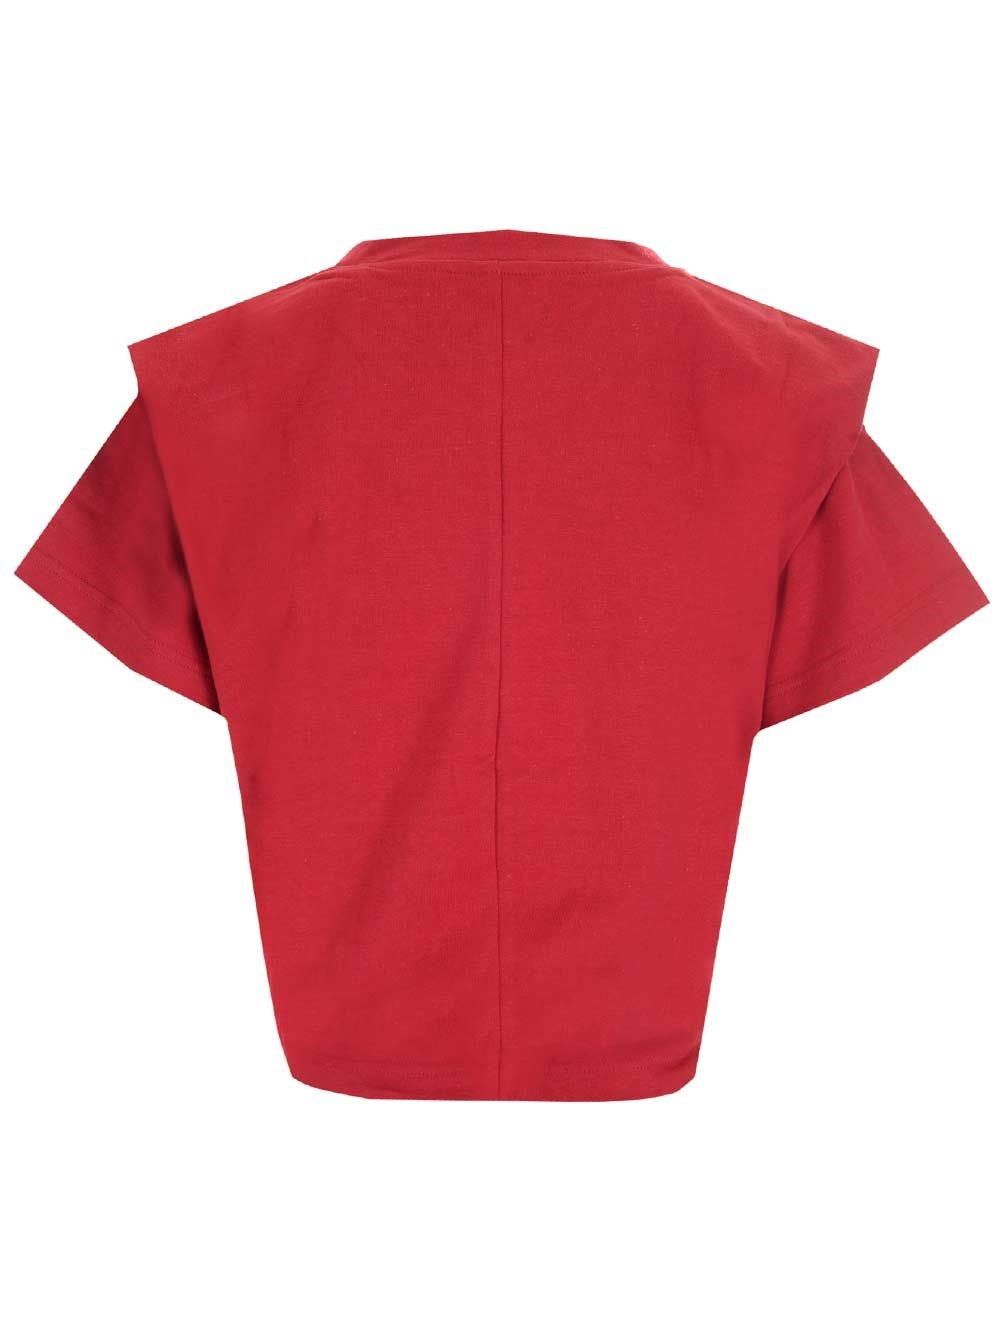 ISABEL MARANT Cottons ISABEL MARANT WOMEN'S RED OTHER MATERIALS T-SHIRT